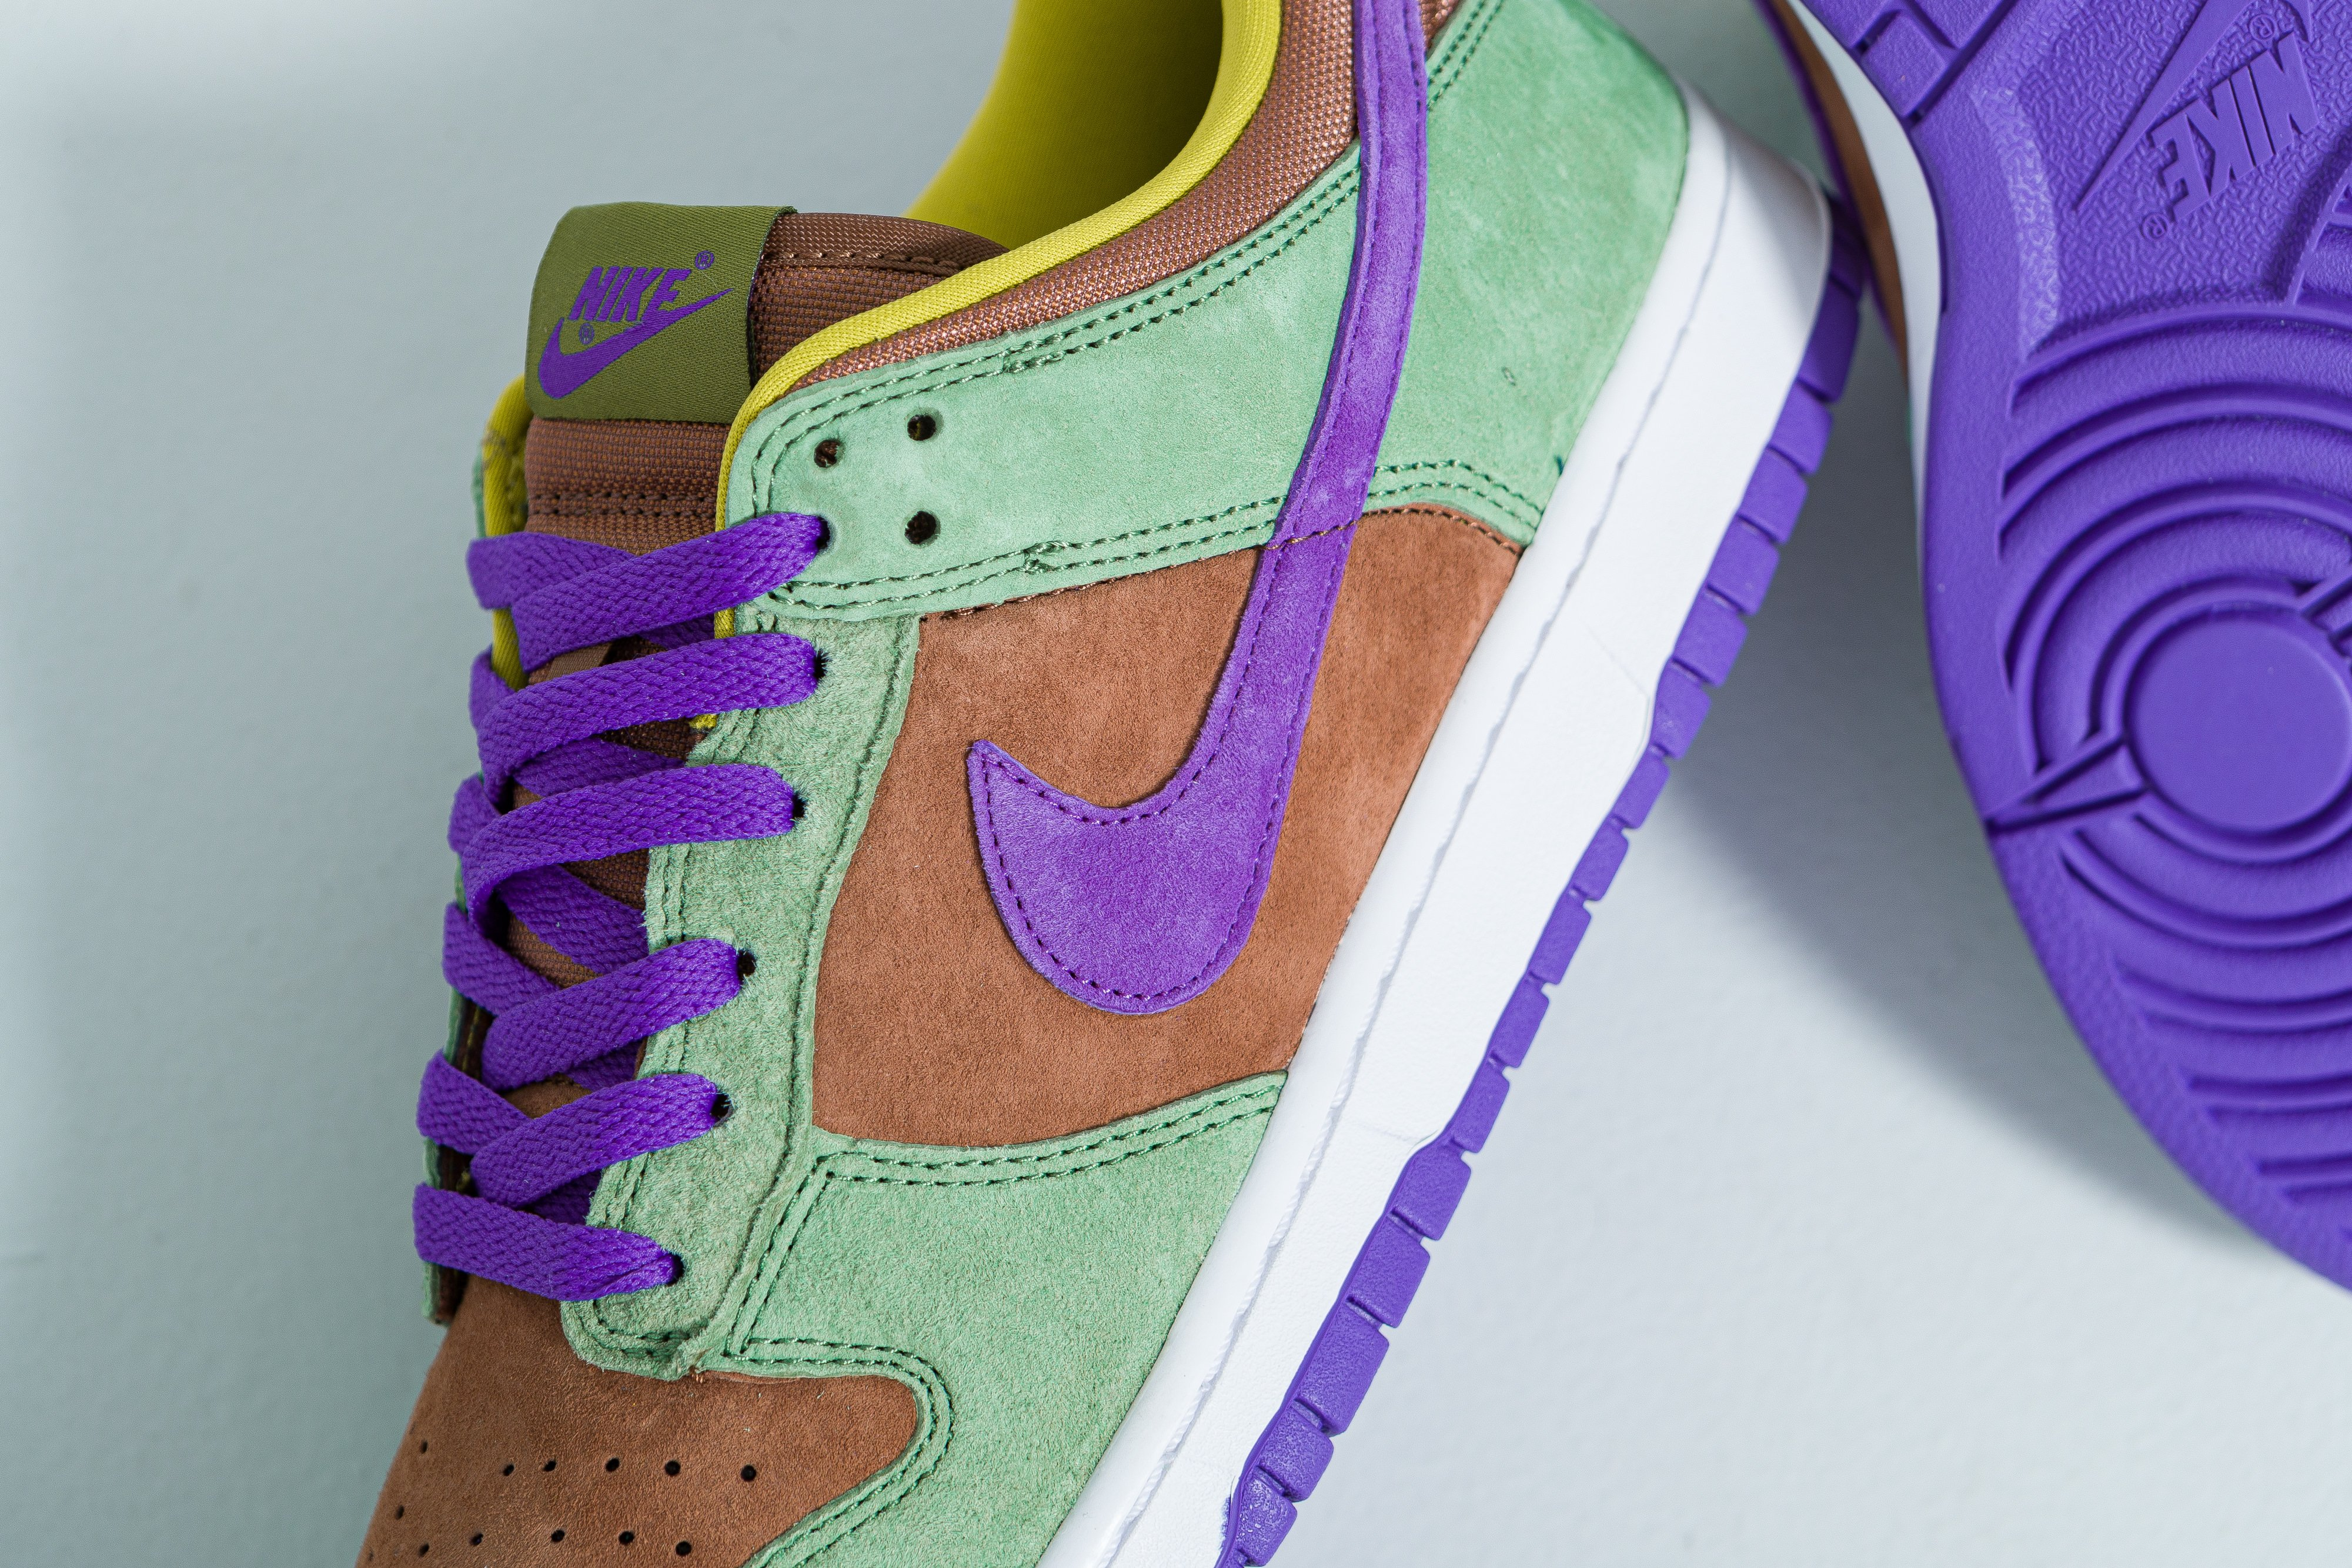 Up There Launches - Nike Dunk Low SP Ugly Duckling 'Veneer'